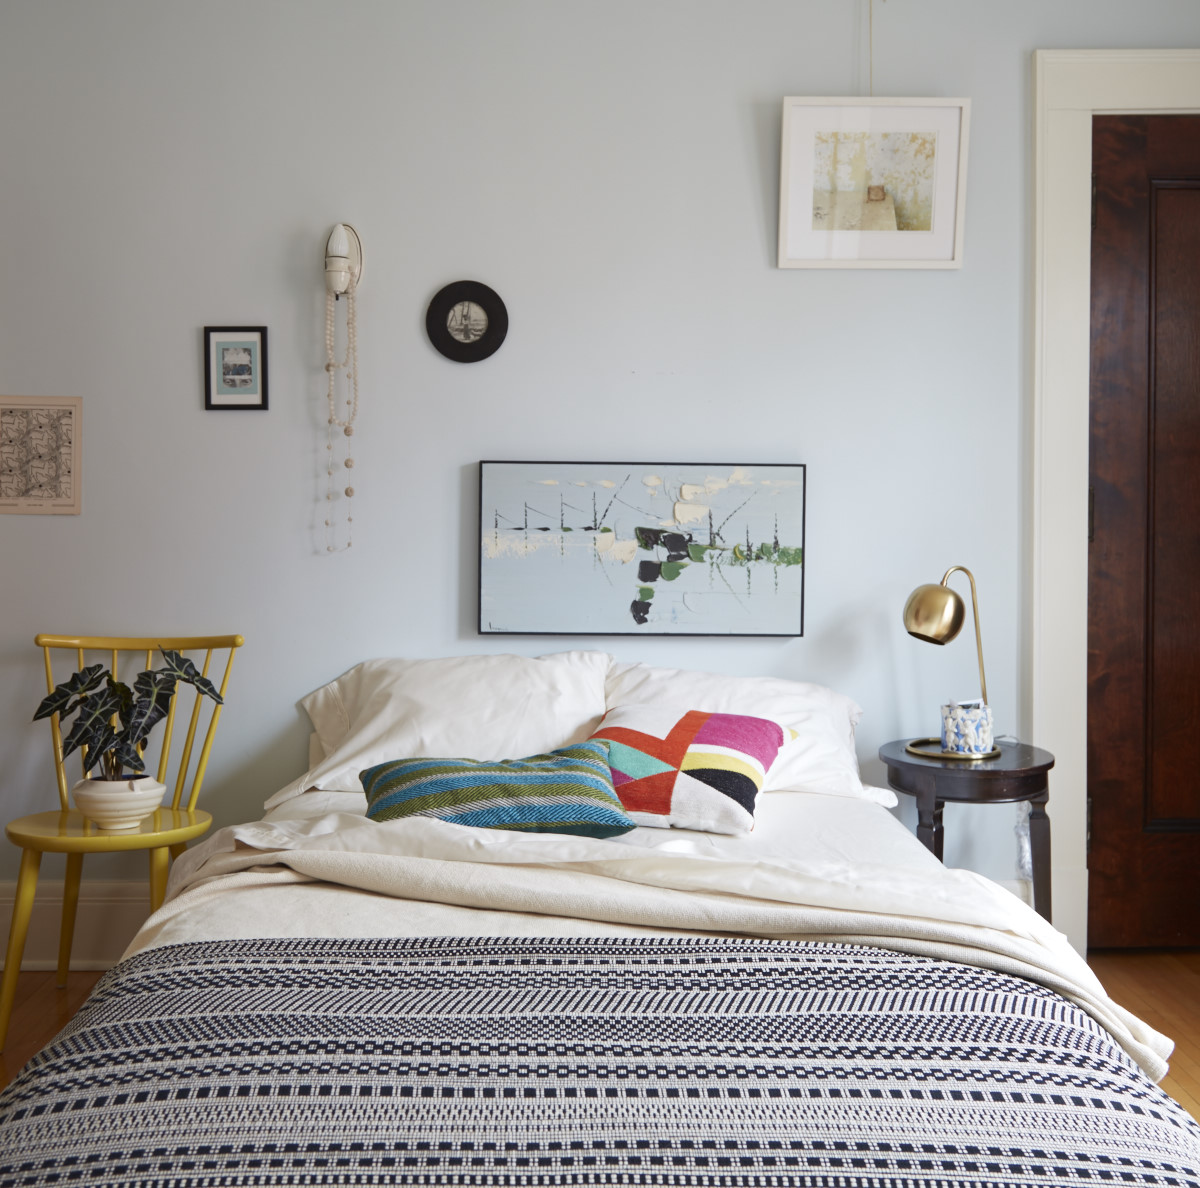 bstyle bed 041215_23274.jpg